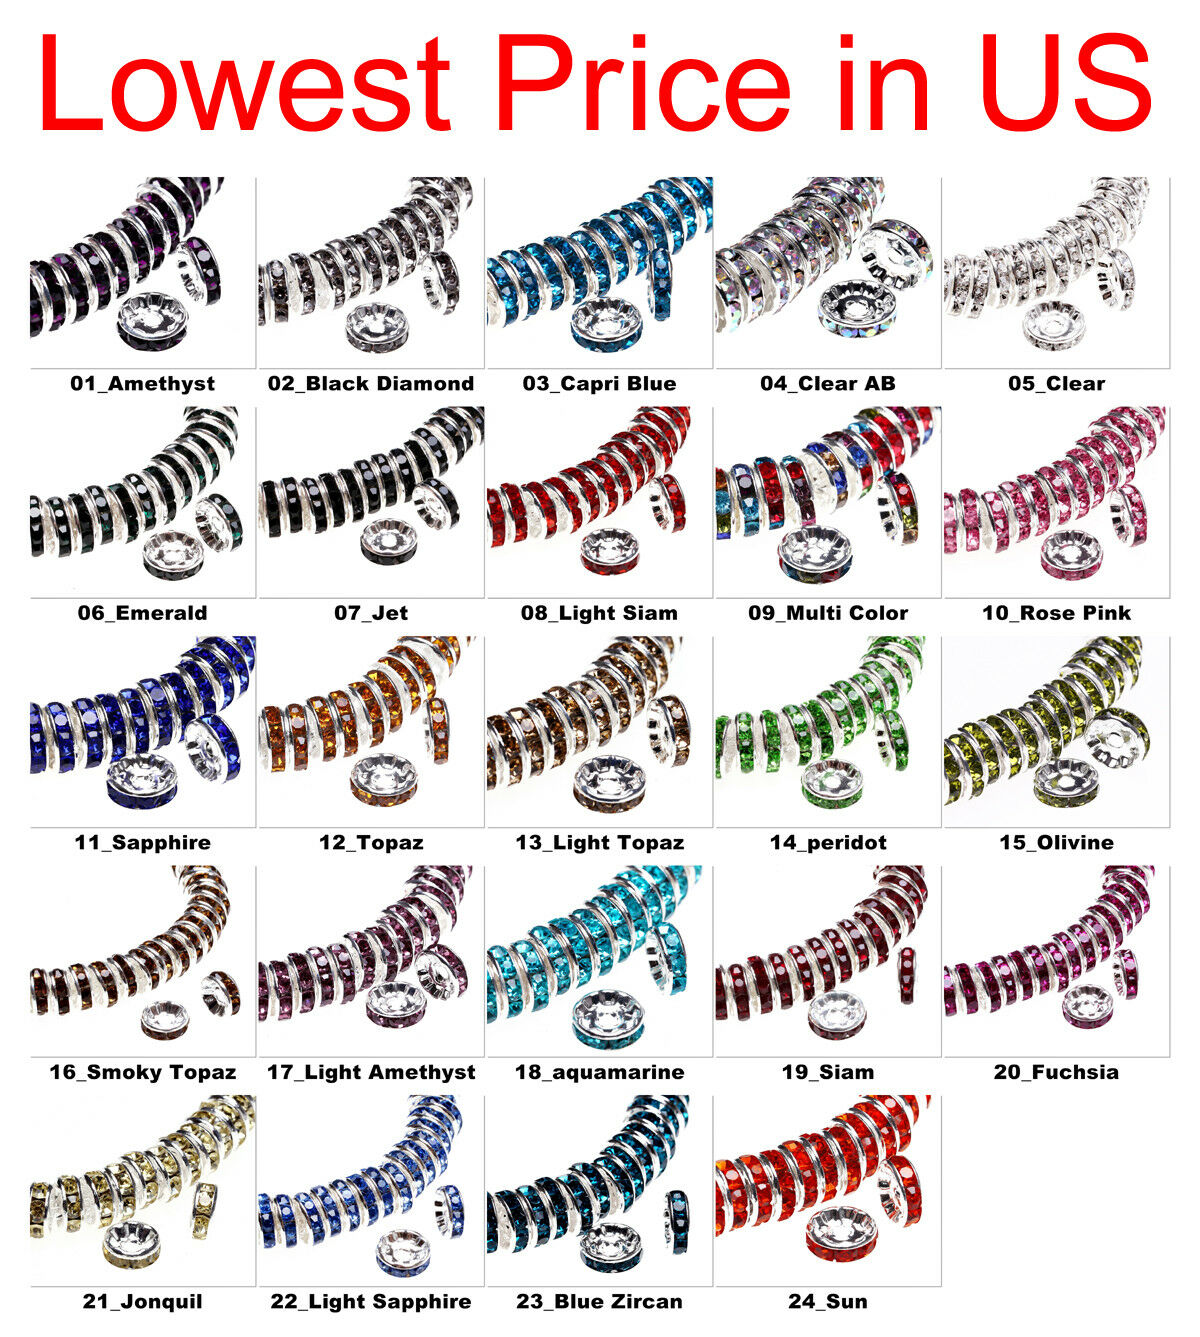 Beads - 100 pcs Czech Crystal Rhinestone Silver Rondelle Spacer Beads 4,5,6,8,10,12mm